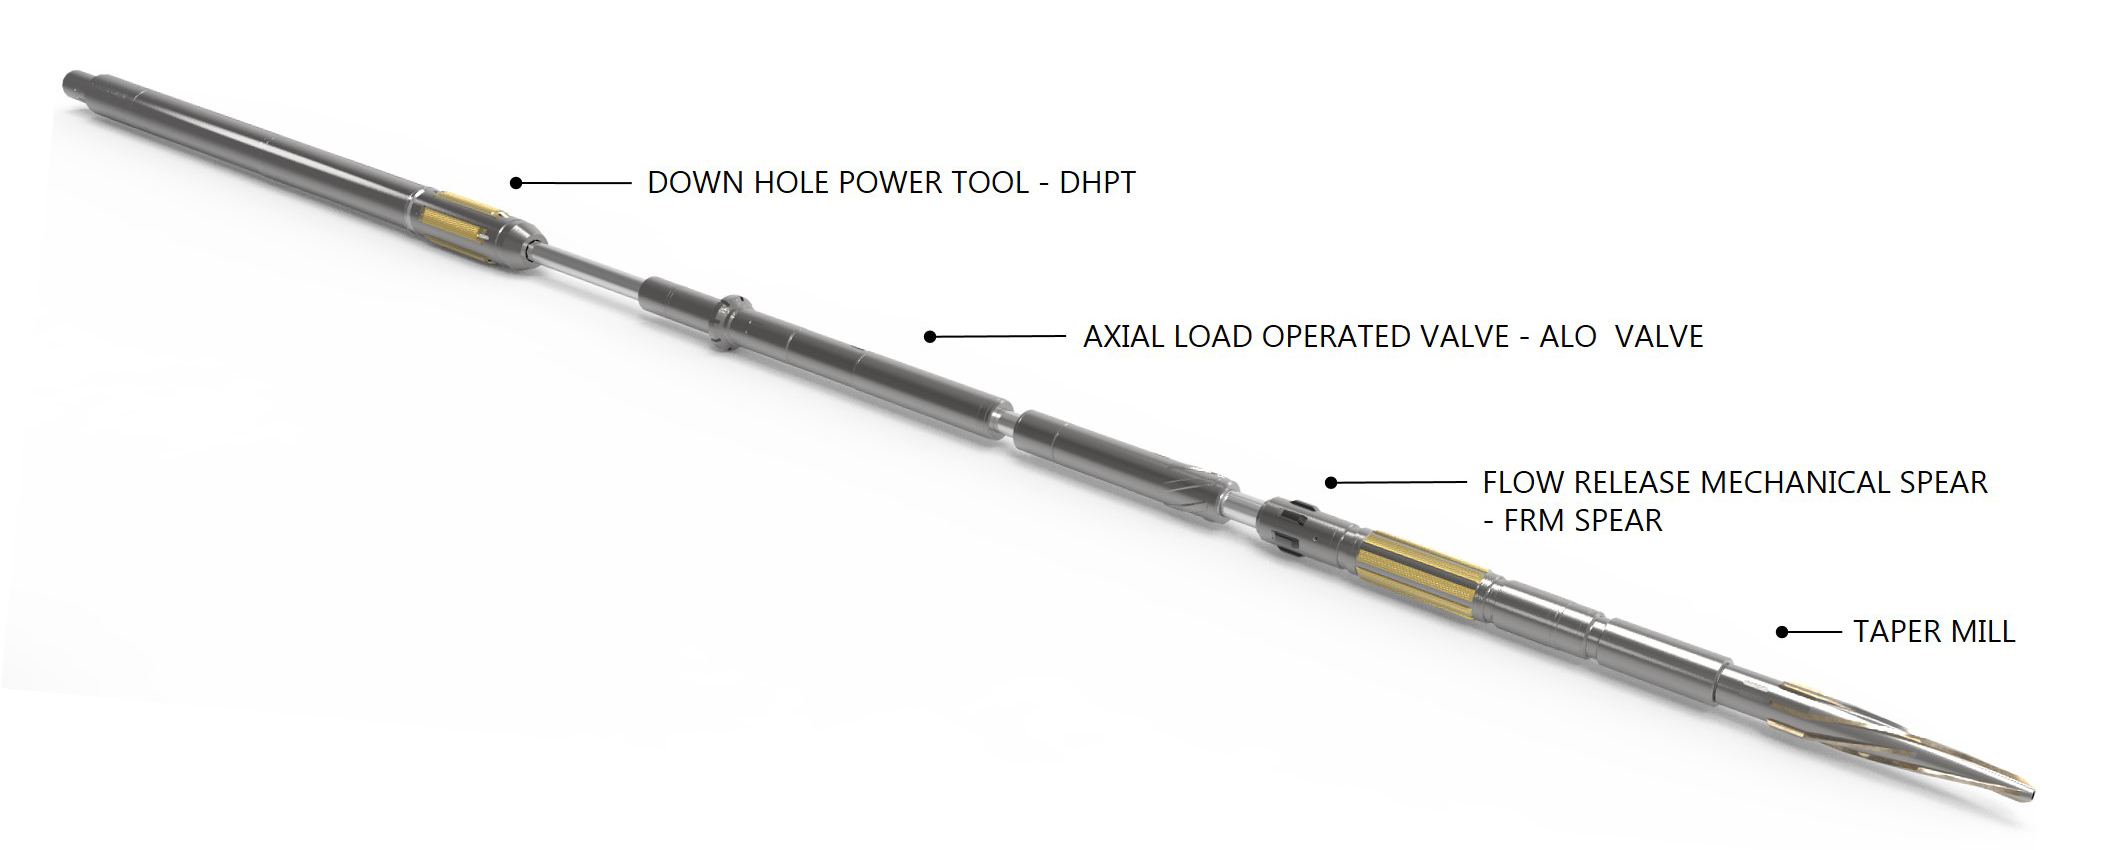 Downhole Power Tool (DHPT)